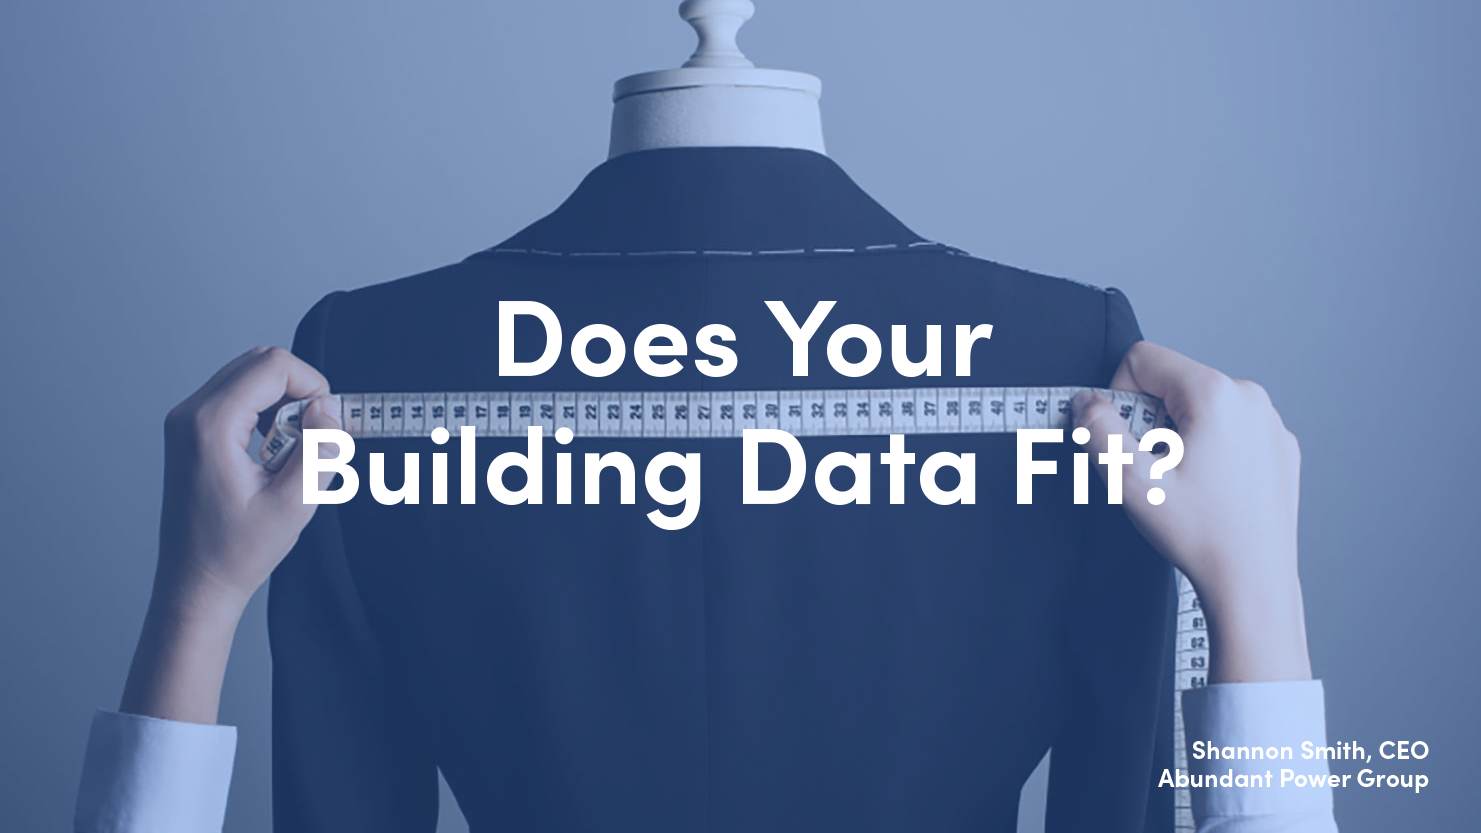 Does Your Building Data Fit?